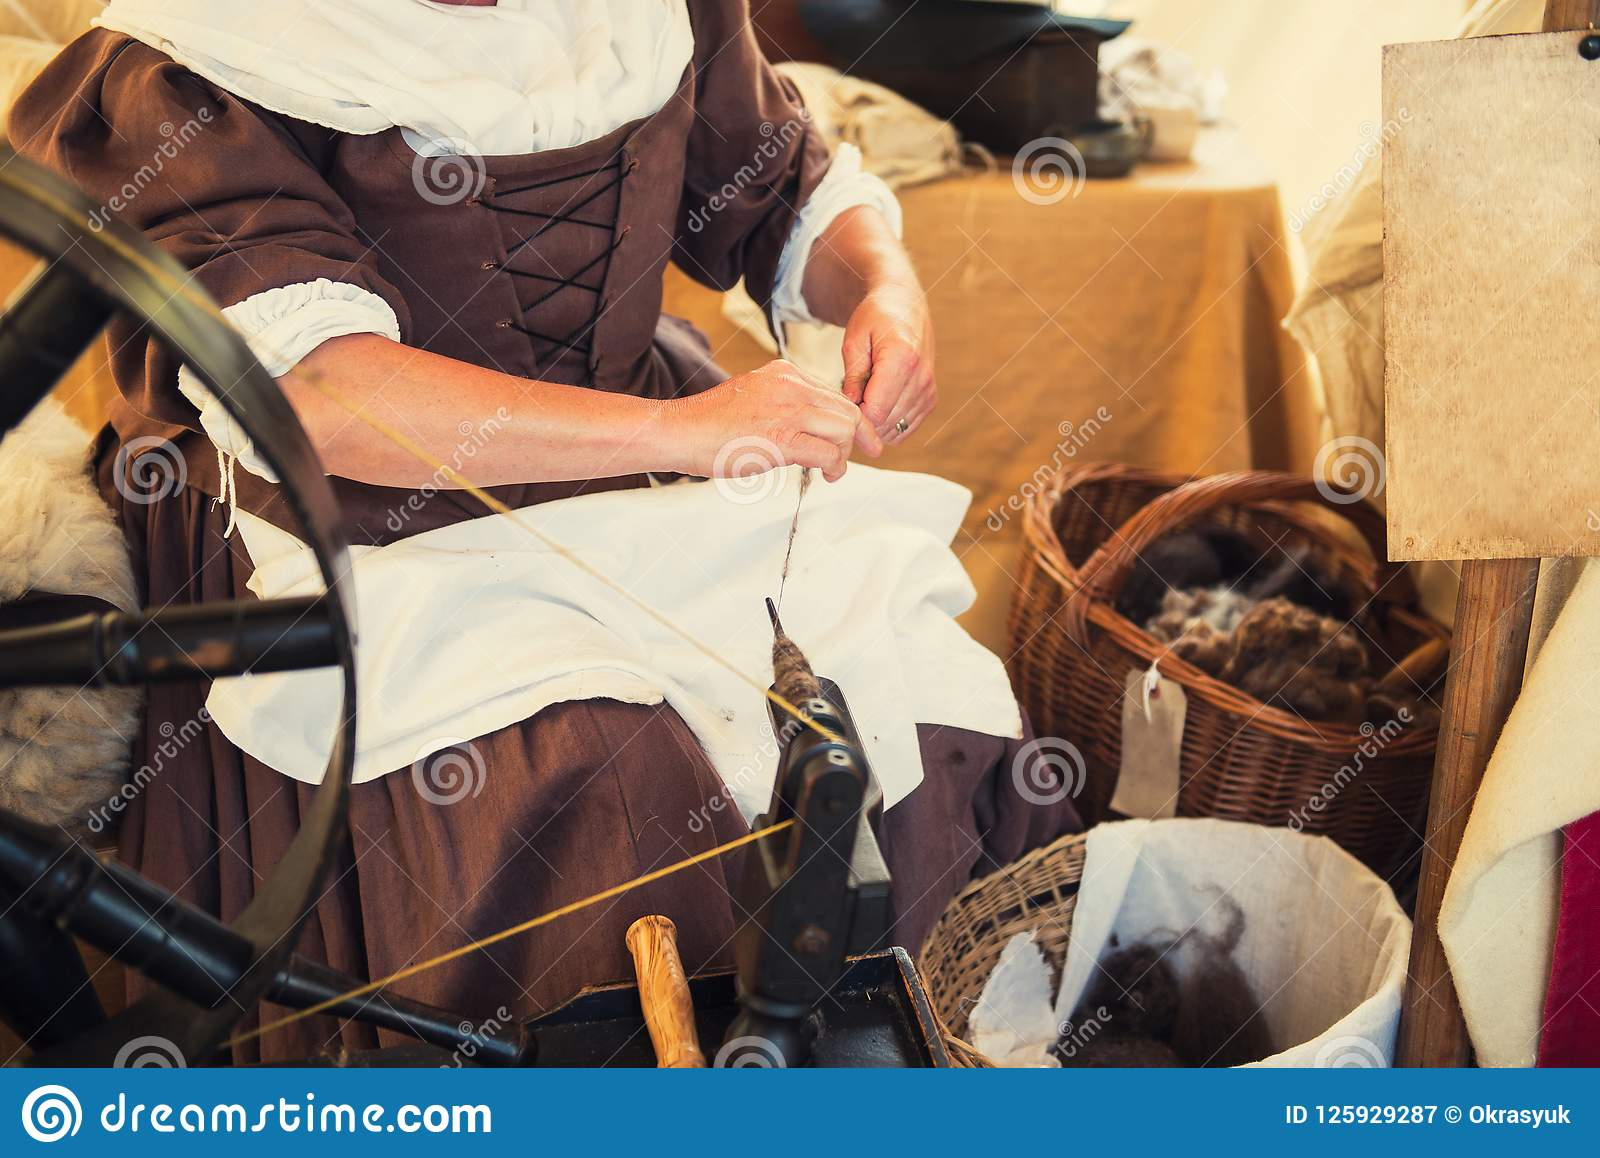 Cropped image of weaver in Middle Agesl clothes make yarn on spinning wheel. Medieval crafts, occupation. The concept of historica